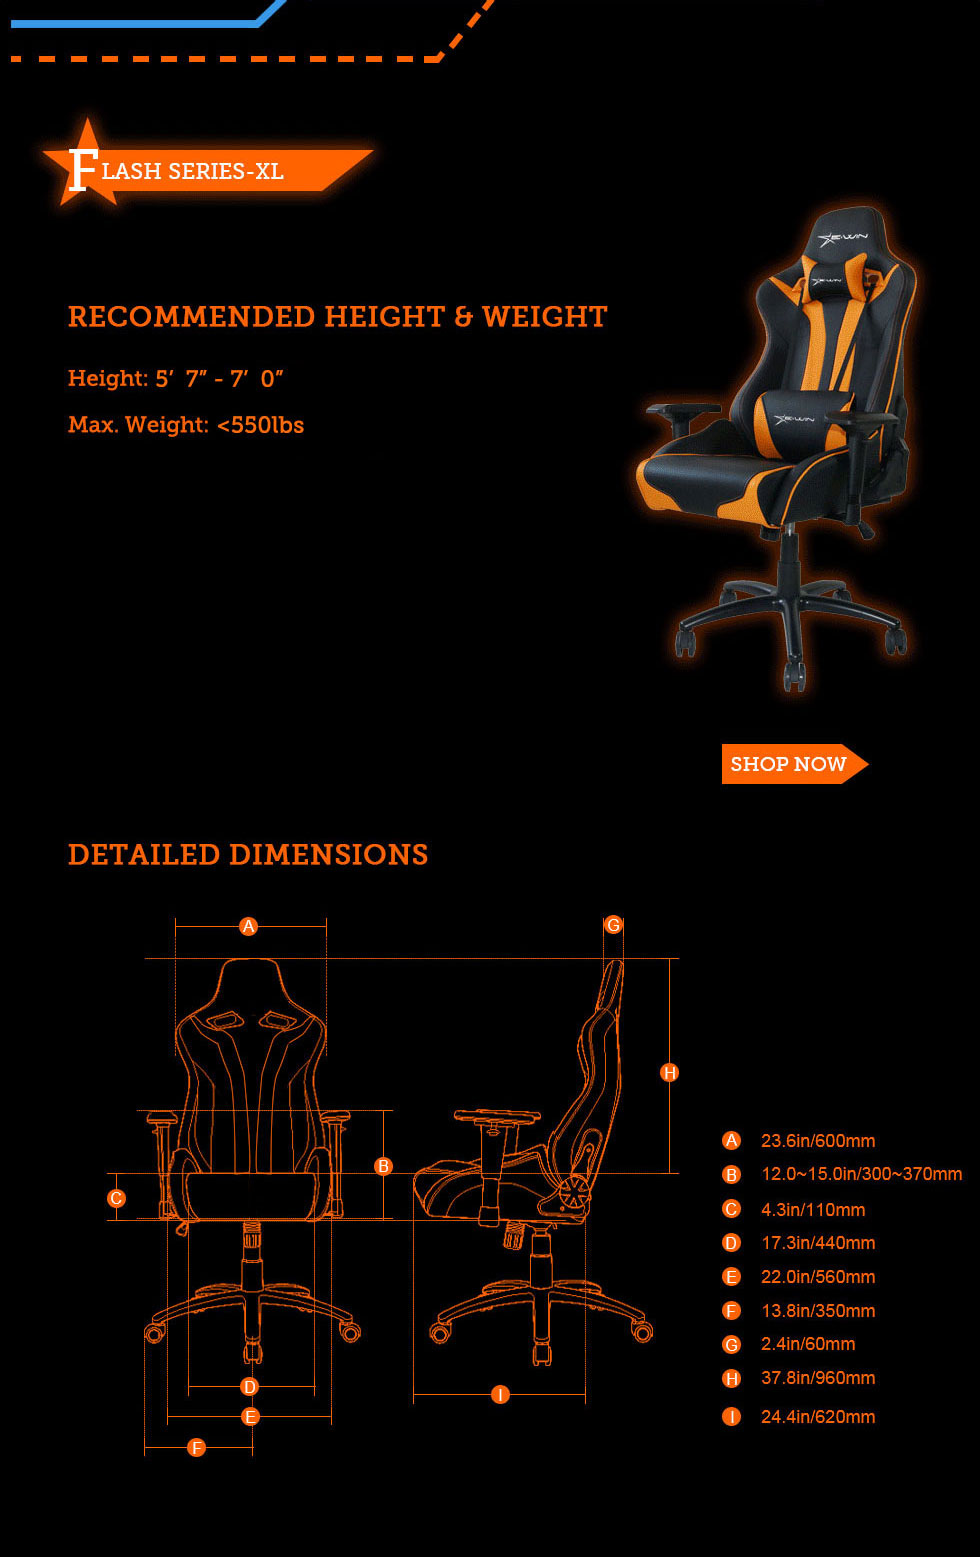 Dimensions of E-WIN Flash Xl Size Gaming Chairs